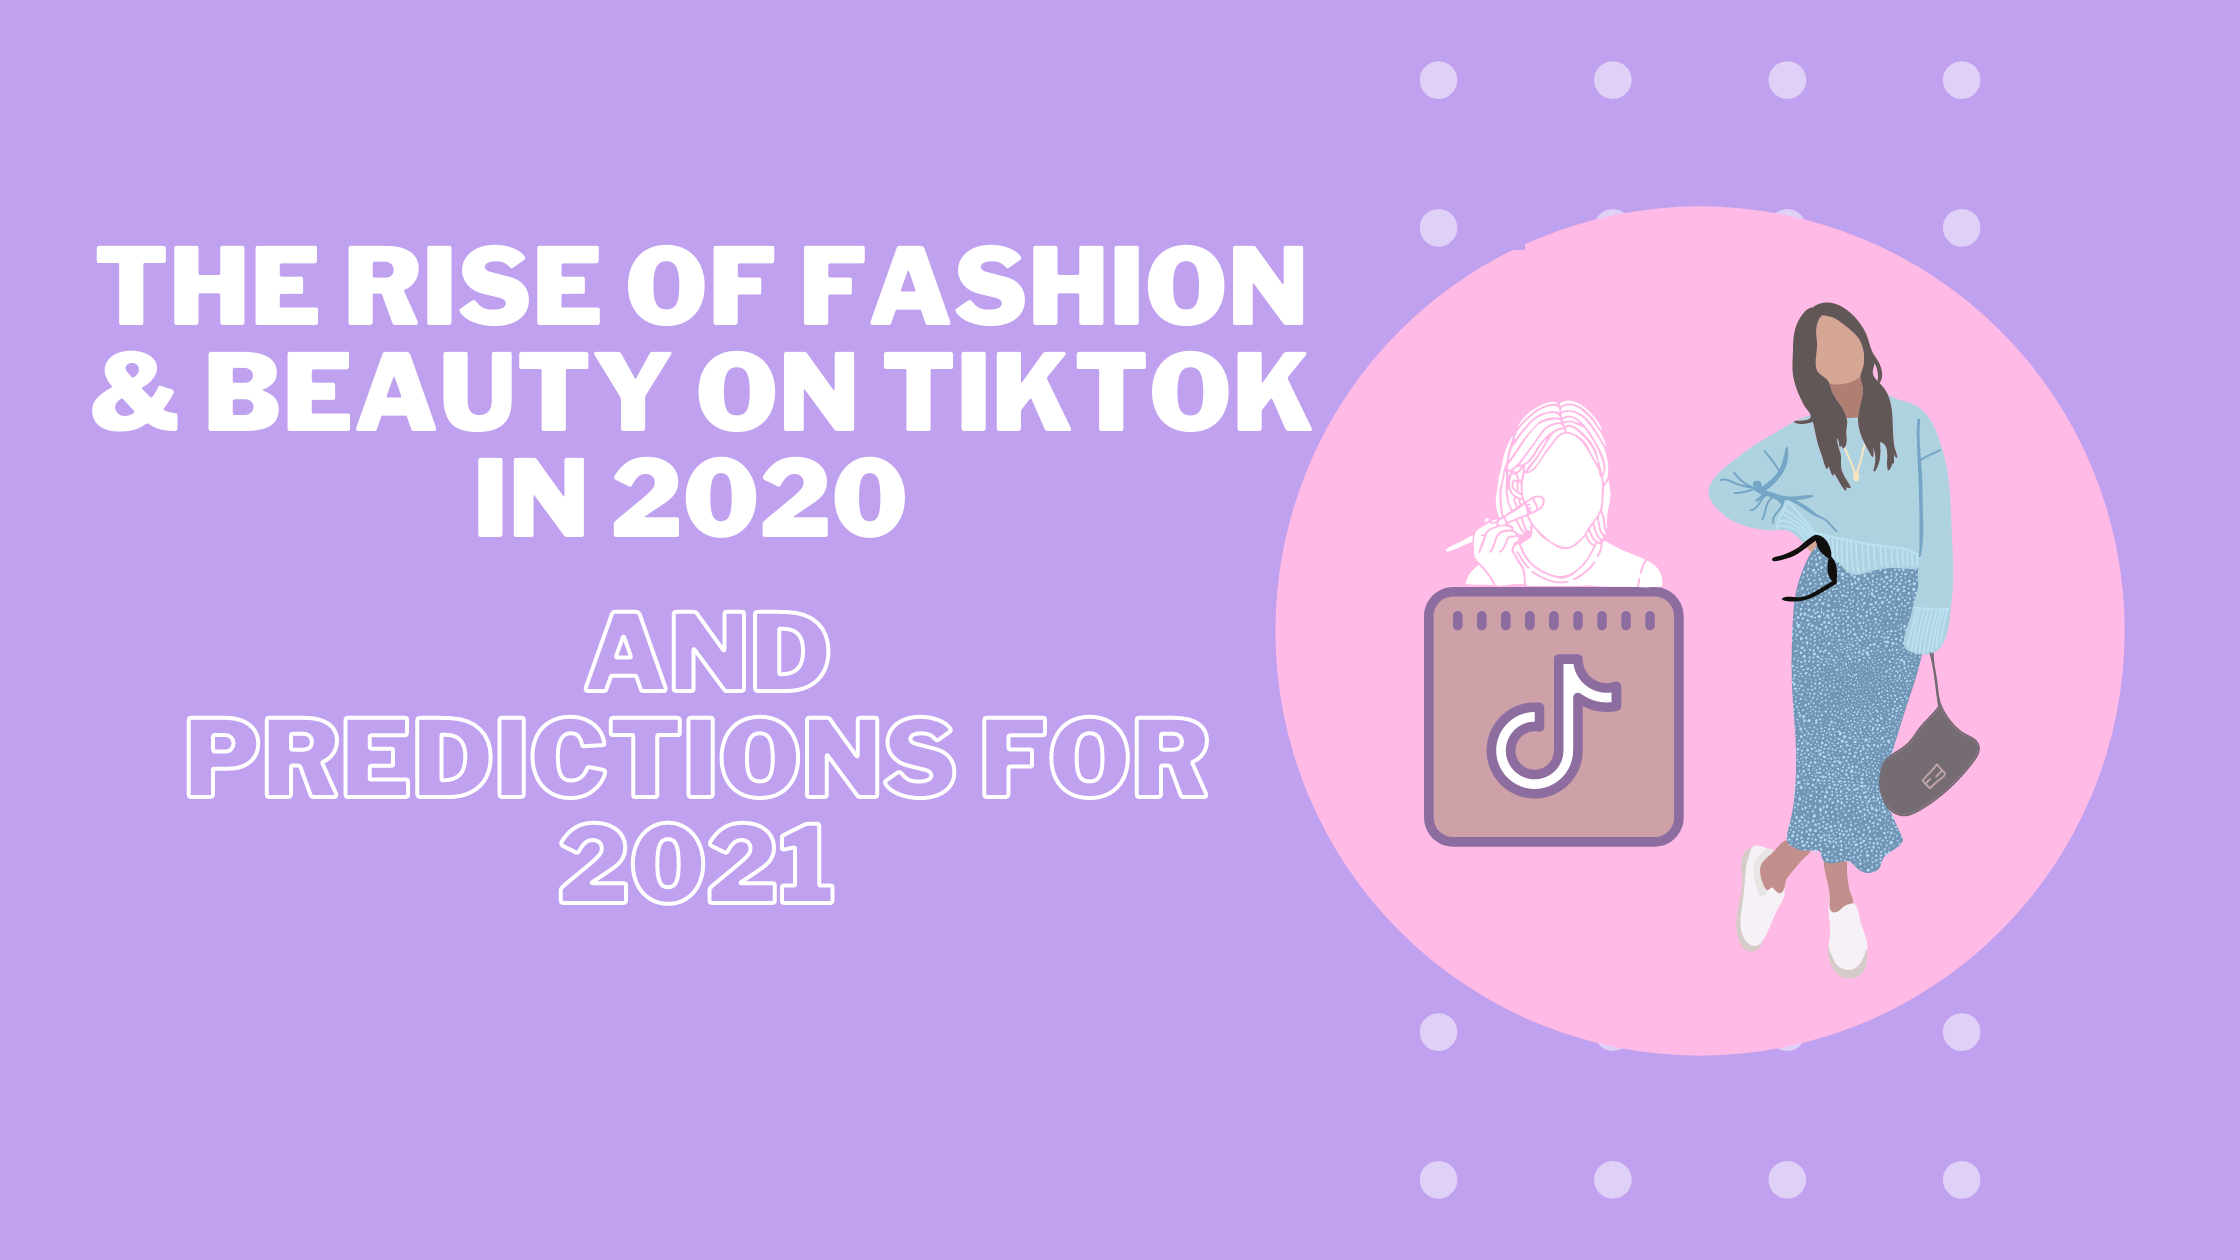 The Rise Of Fashion & Beauty on TikTok in 2020 and Predictions for 2021